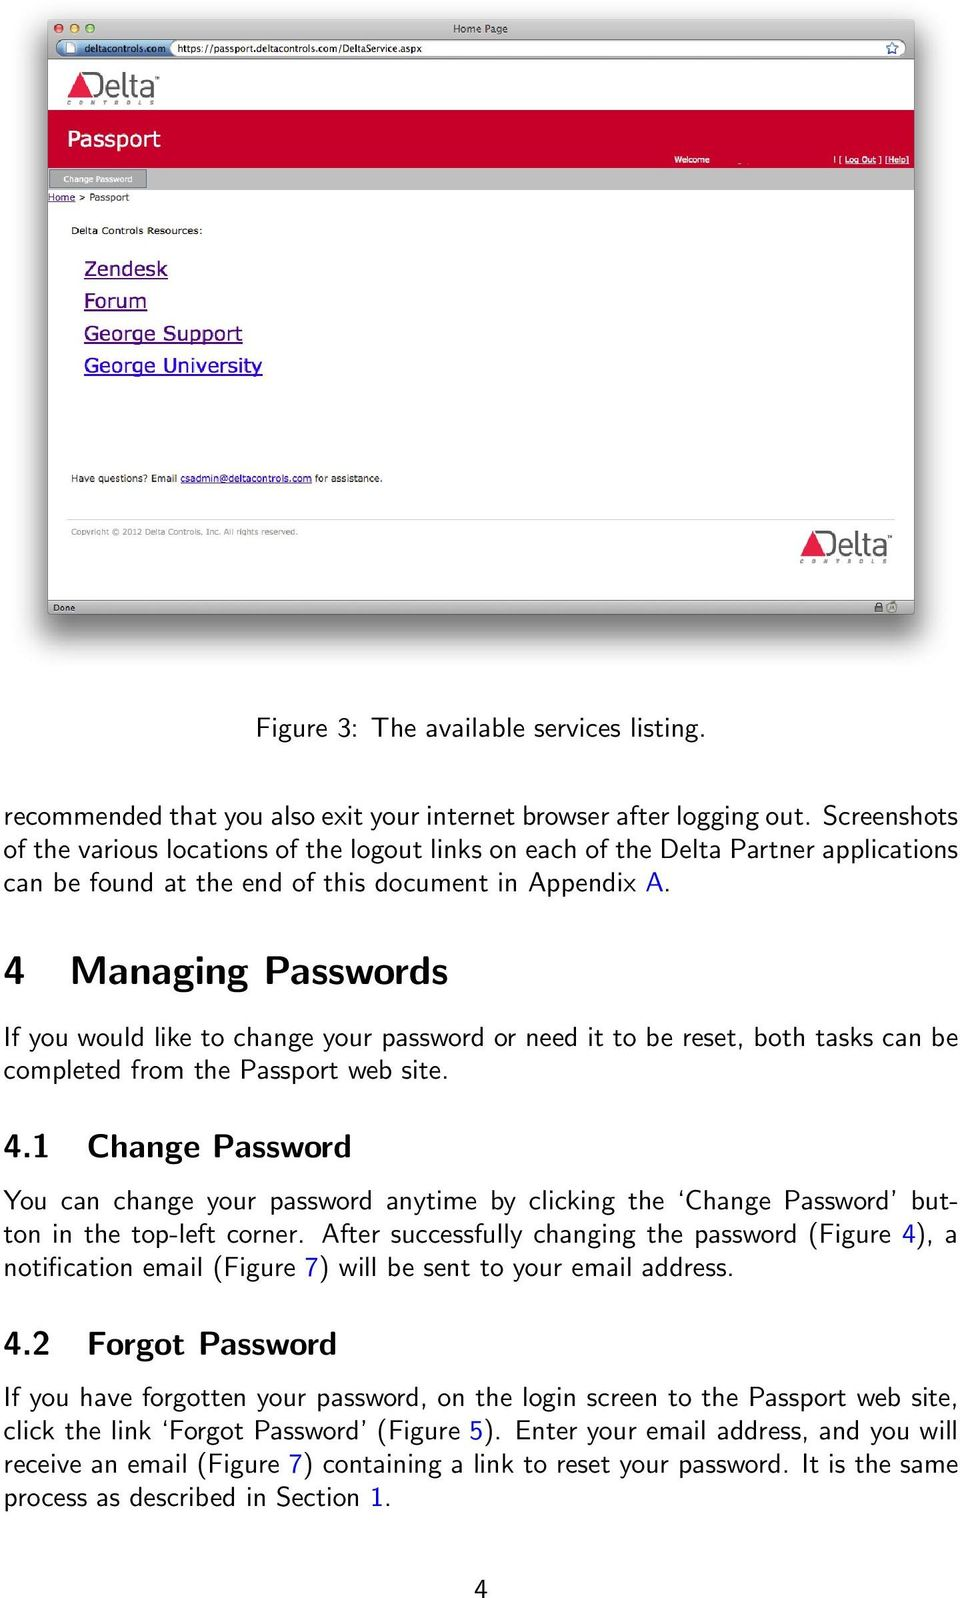 4 Managing Passwords If you would like to change your password or need it to be reset, both tasks can be completed from the Passport web site. 4.